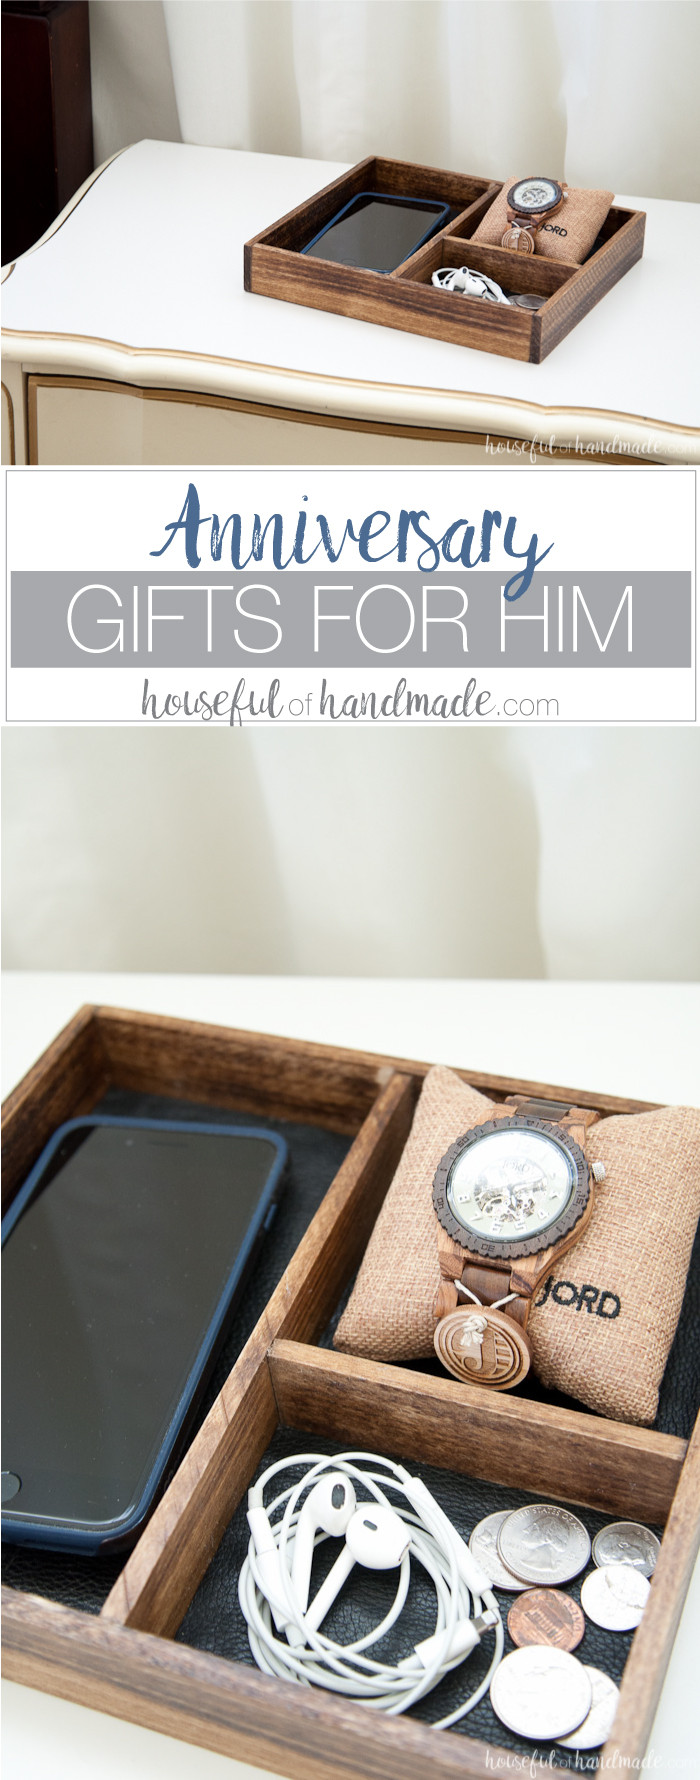 DIY Anniversary Gifts For Him  Anniversary Gifts for Him a Houseful of Handmade